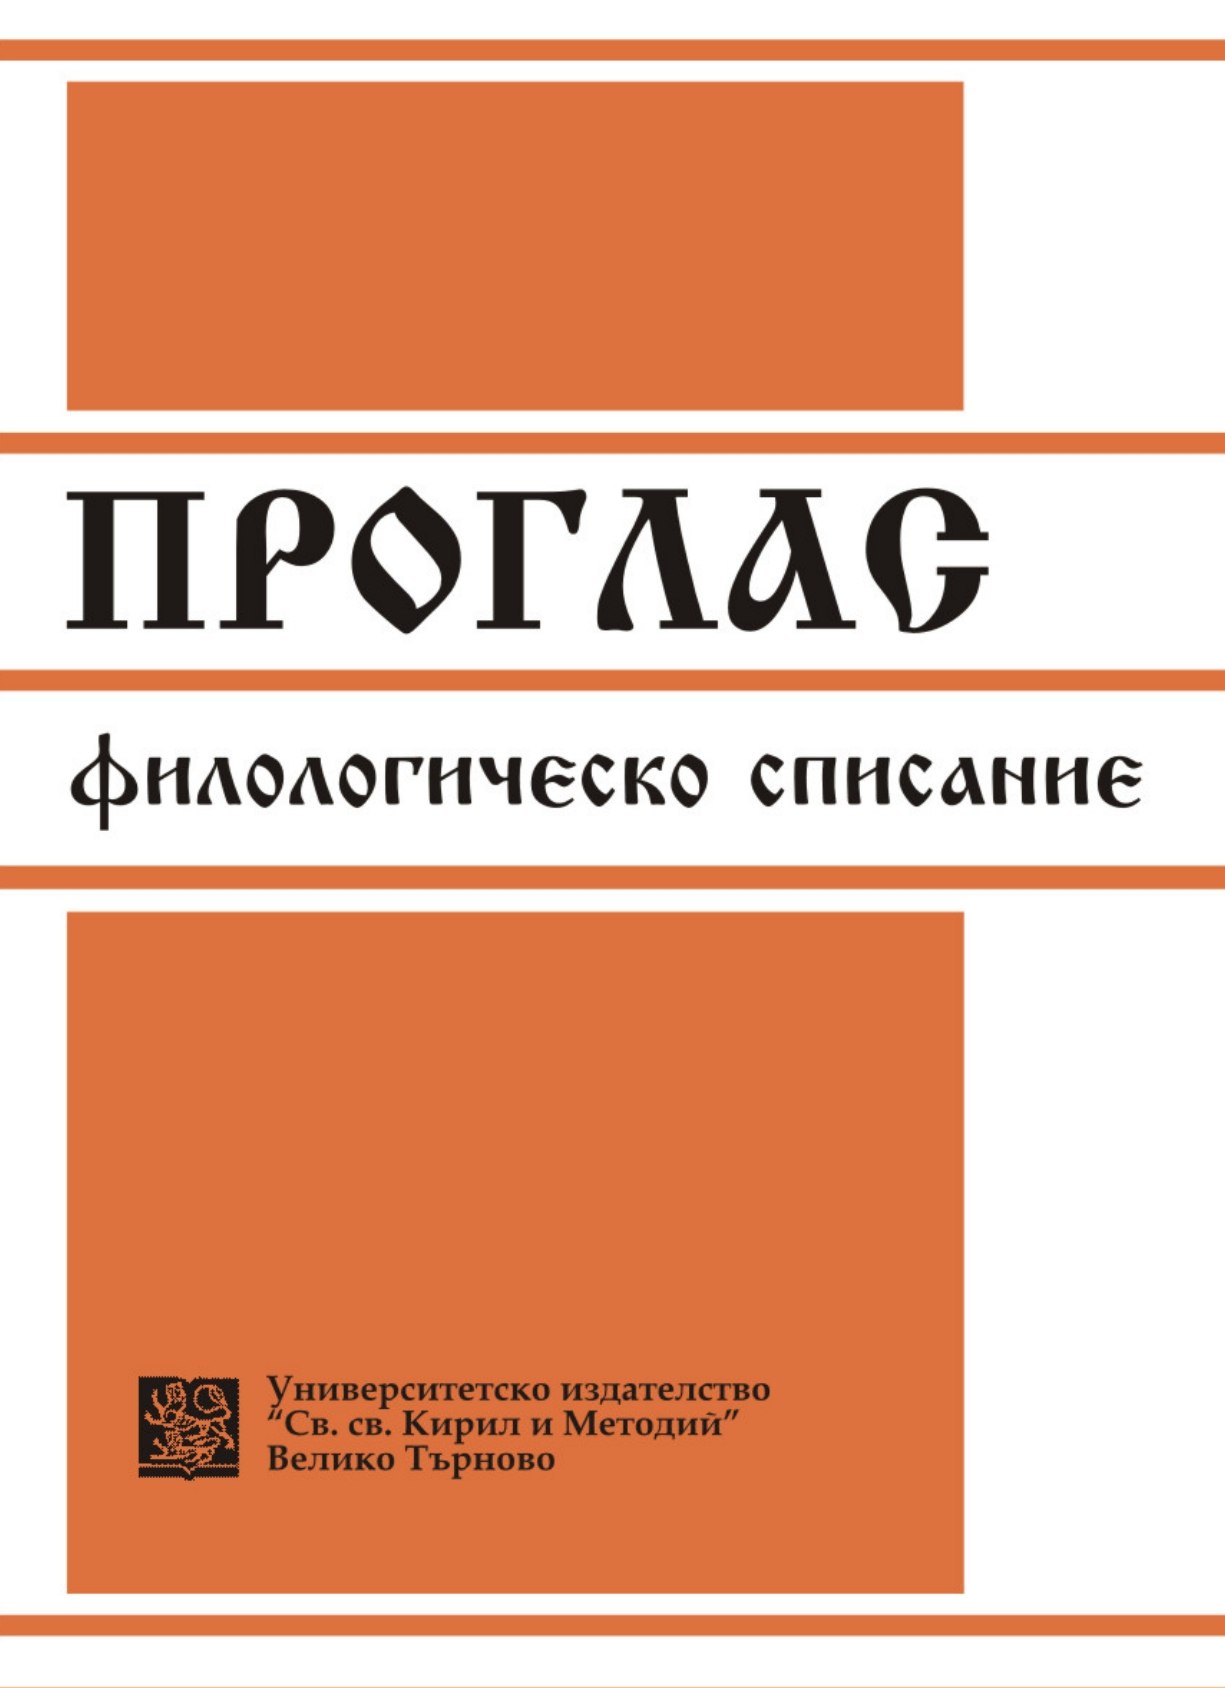 A Contrastive Study of Lexical Asymmetry in Bulgarian and Czech Languages (on Radost Zhelezarova, Proyavi na leksikalna asimetriya…) Cover Image